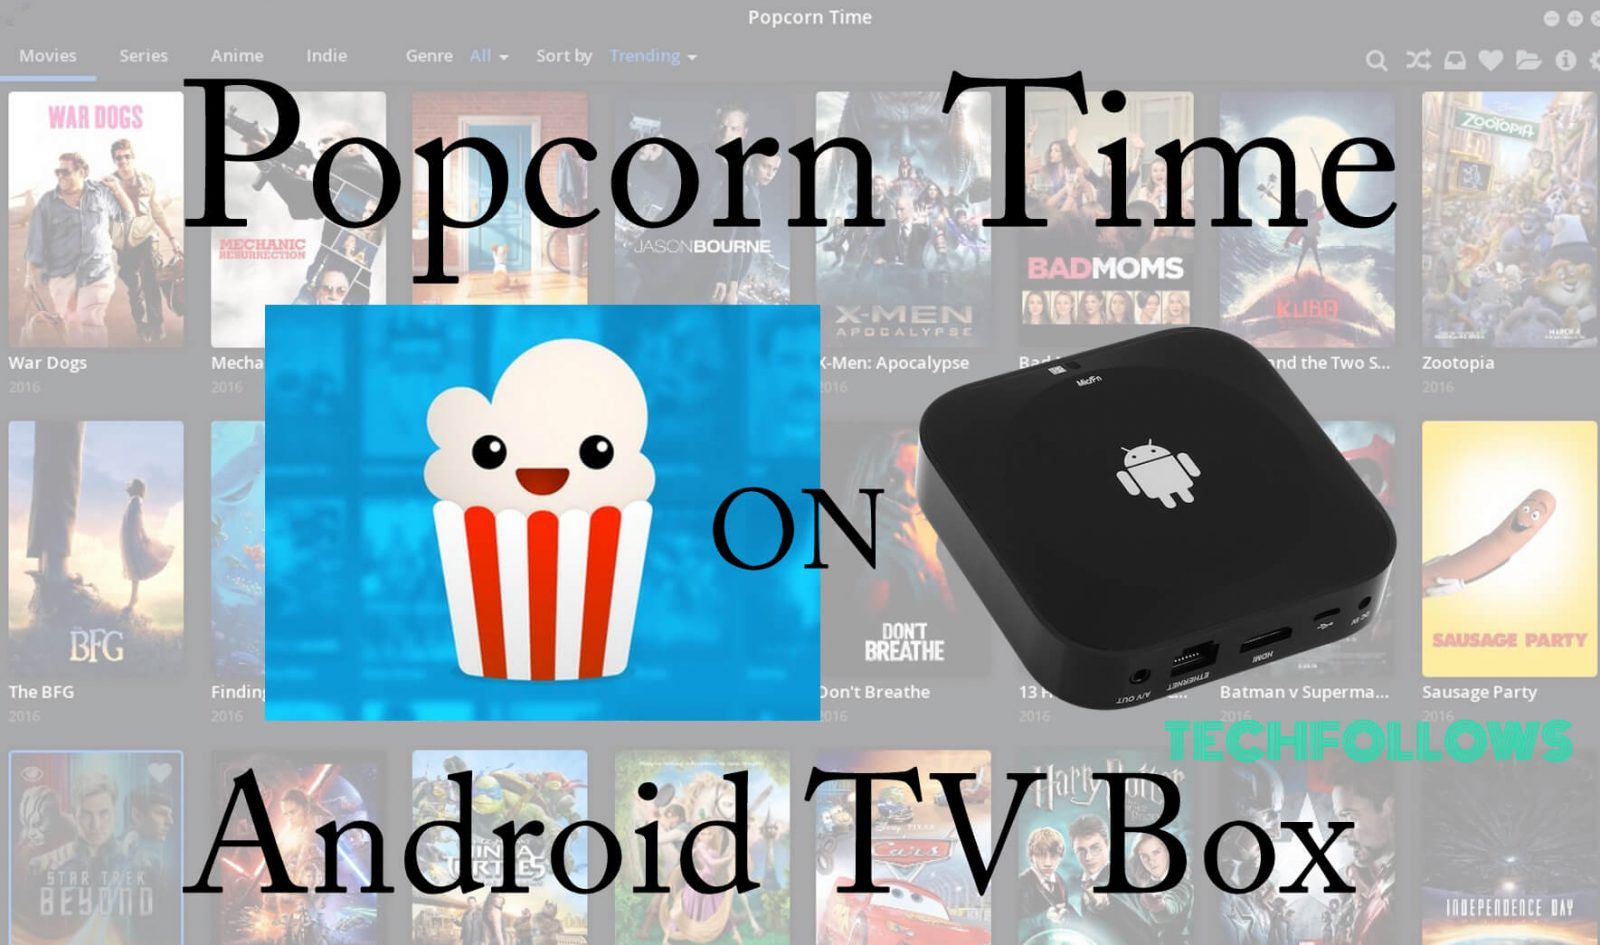 How to Download Popcorn Time for Android Box? 2019 - Tech Follows